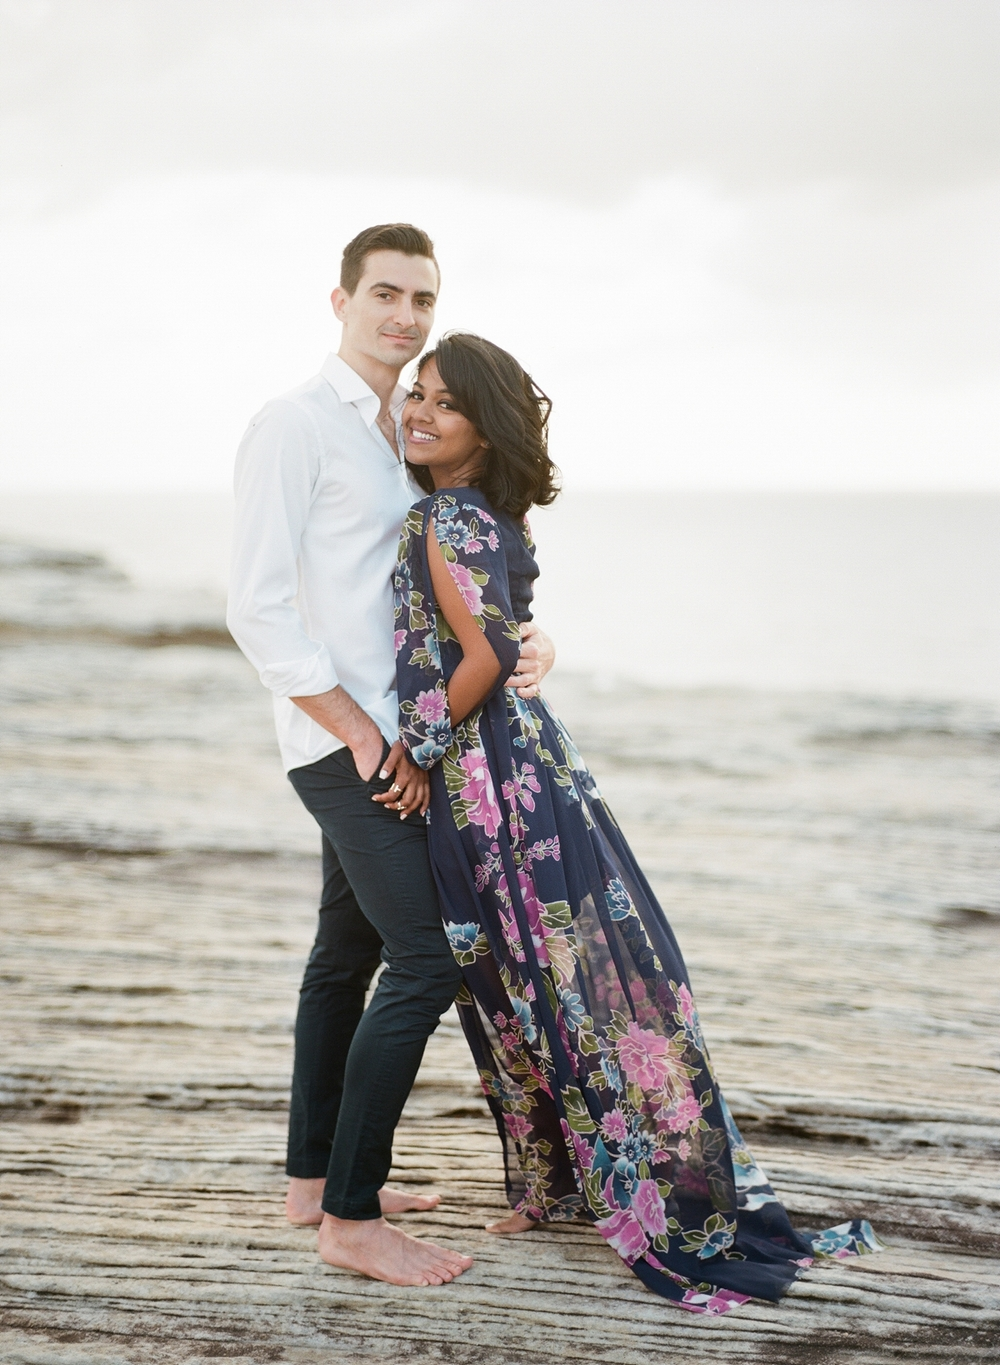 Coastal Sydney couples session by Mr Edwards Photography_0737_1180.jpg